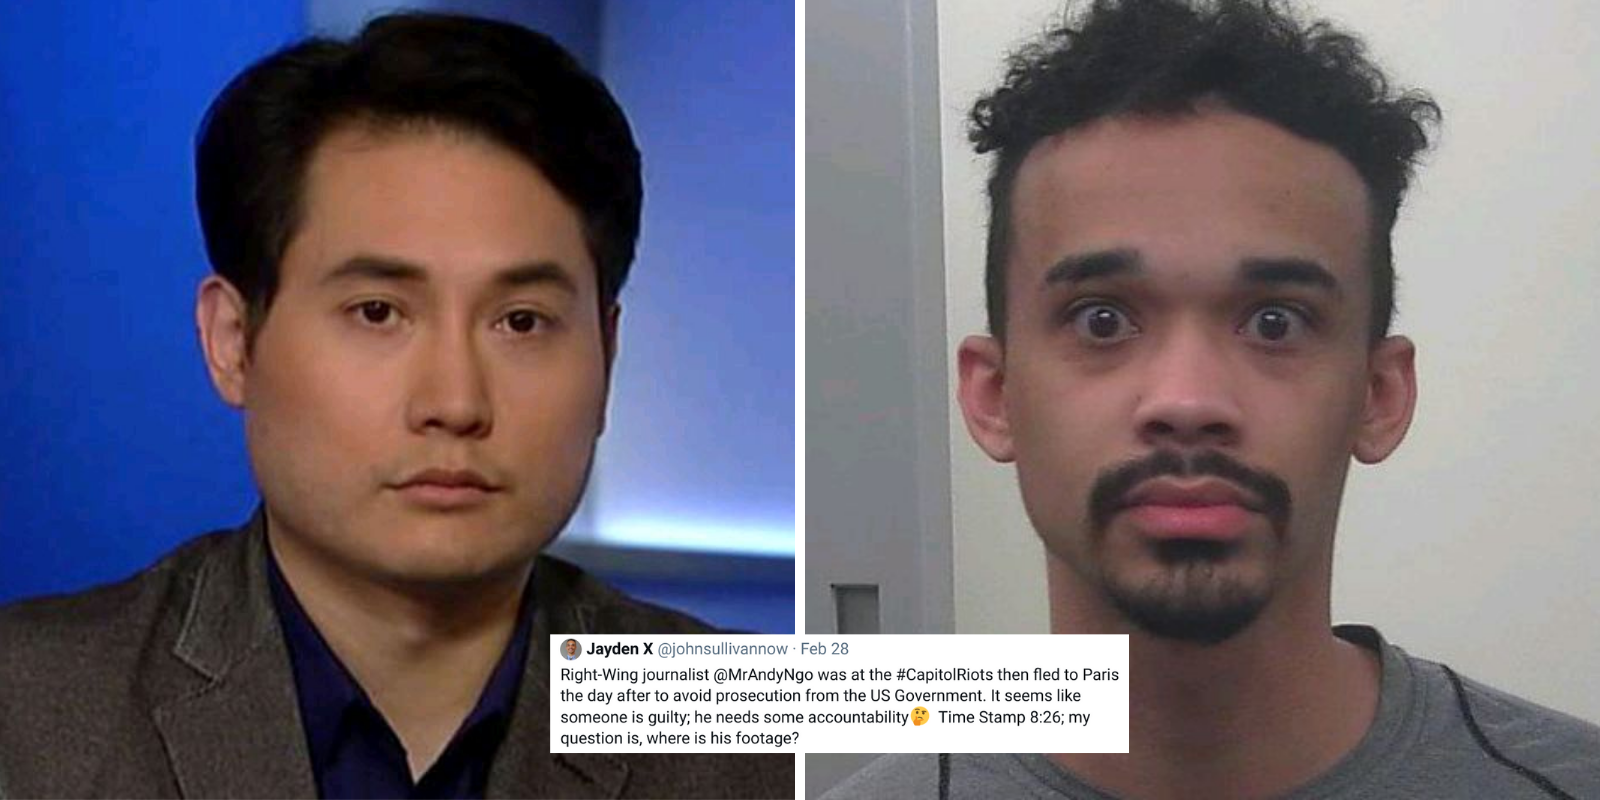 Andy Ngo threatens to sue far-left rioter John Sullivan over false claim he participated in Jan 6 riot